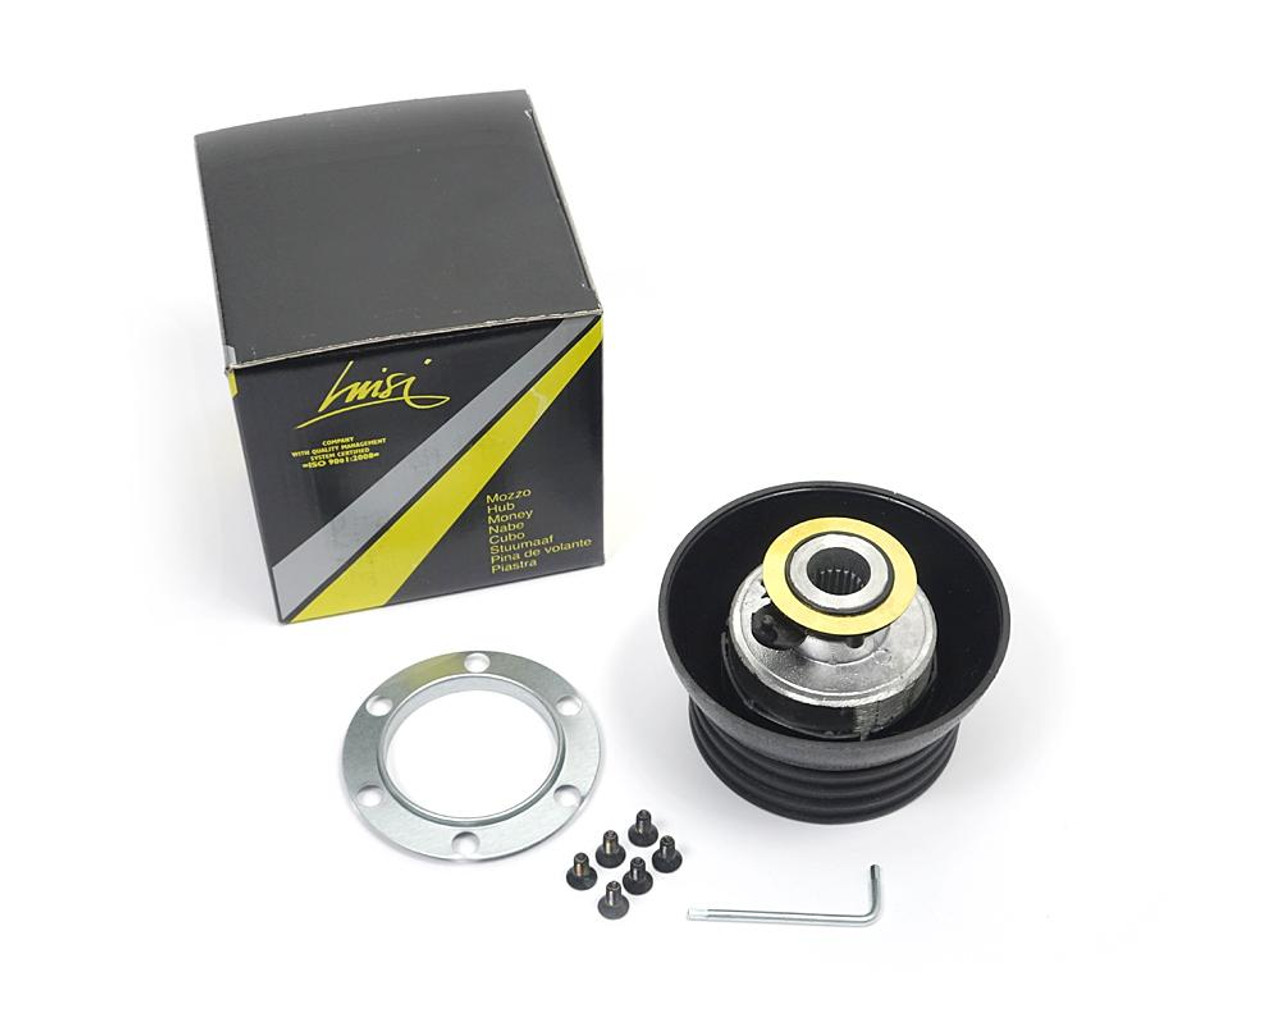 Steering wheel hub adaptor FIAT 124 Spider and Sport Coupe, Spider 2000 and Pininfarina - May 1972-1985 - Auto Ricambi